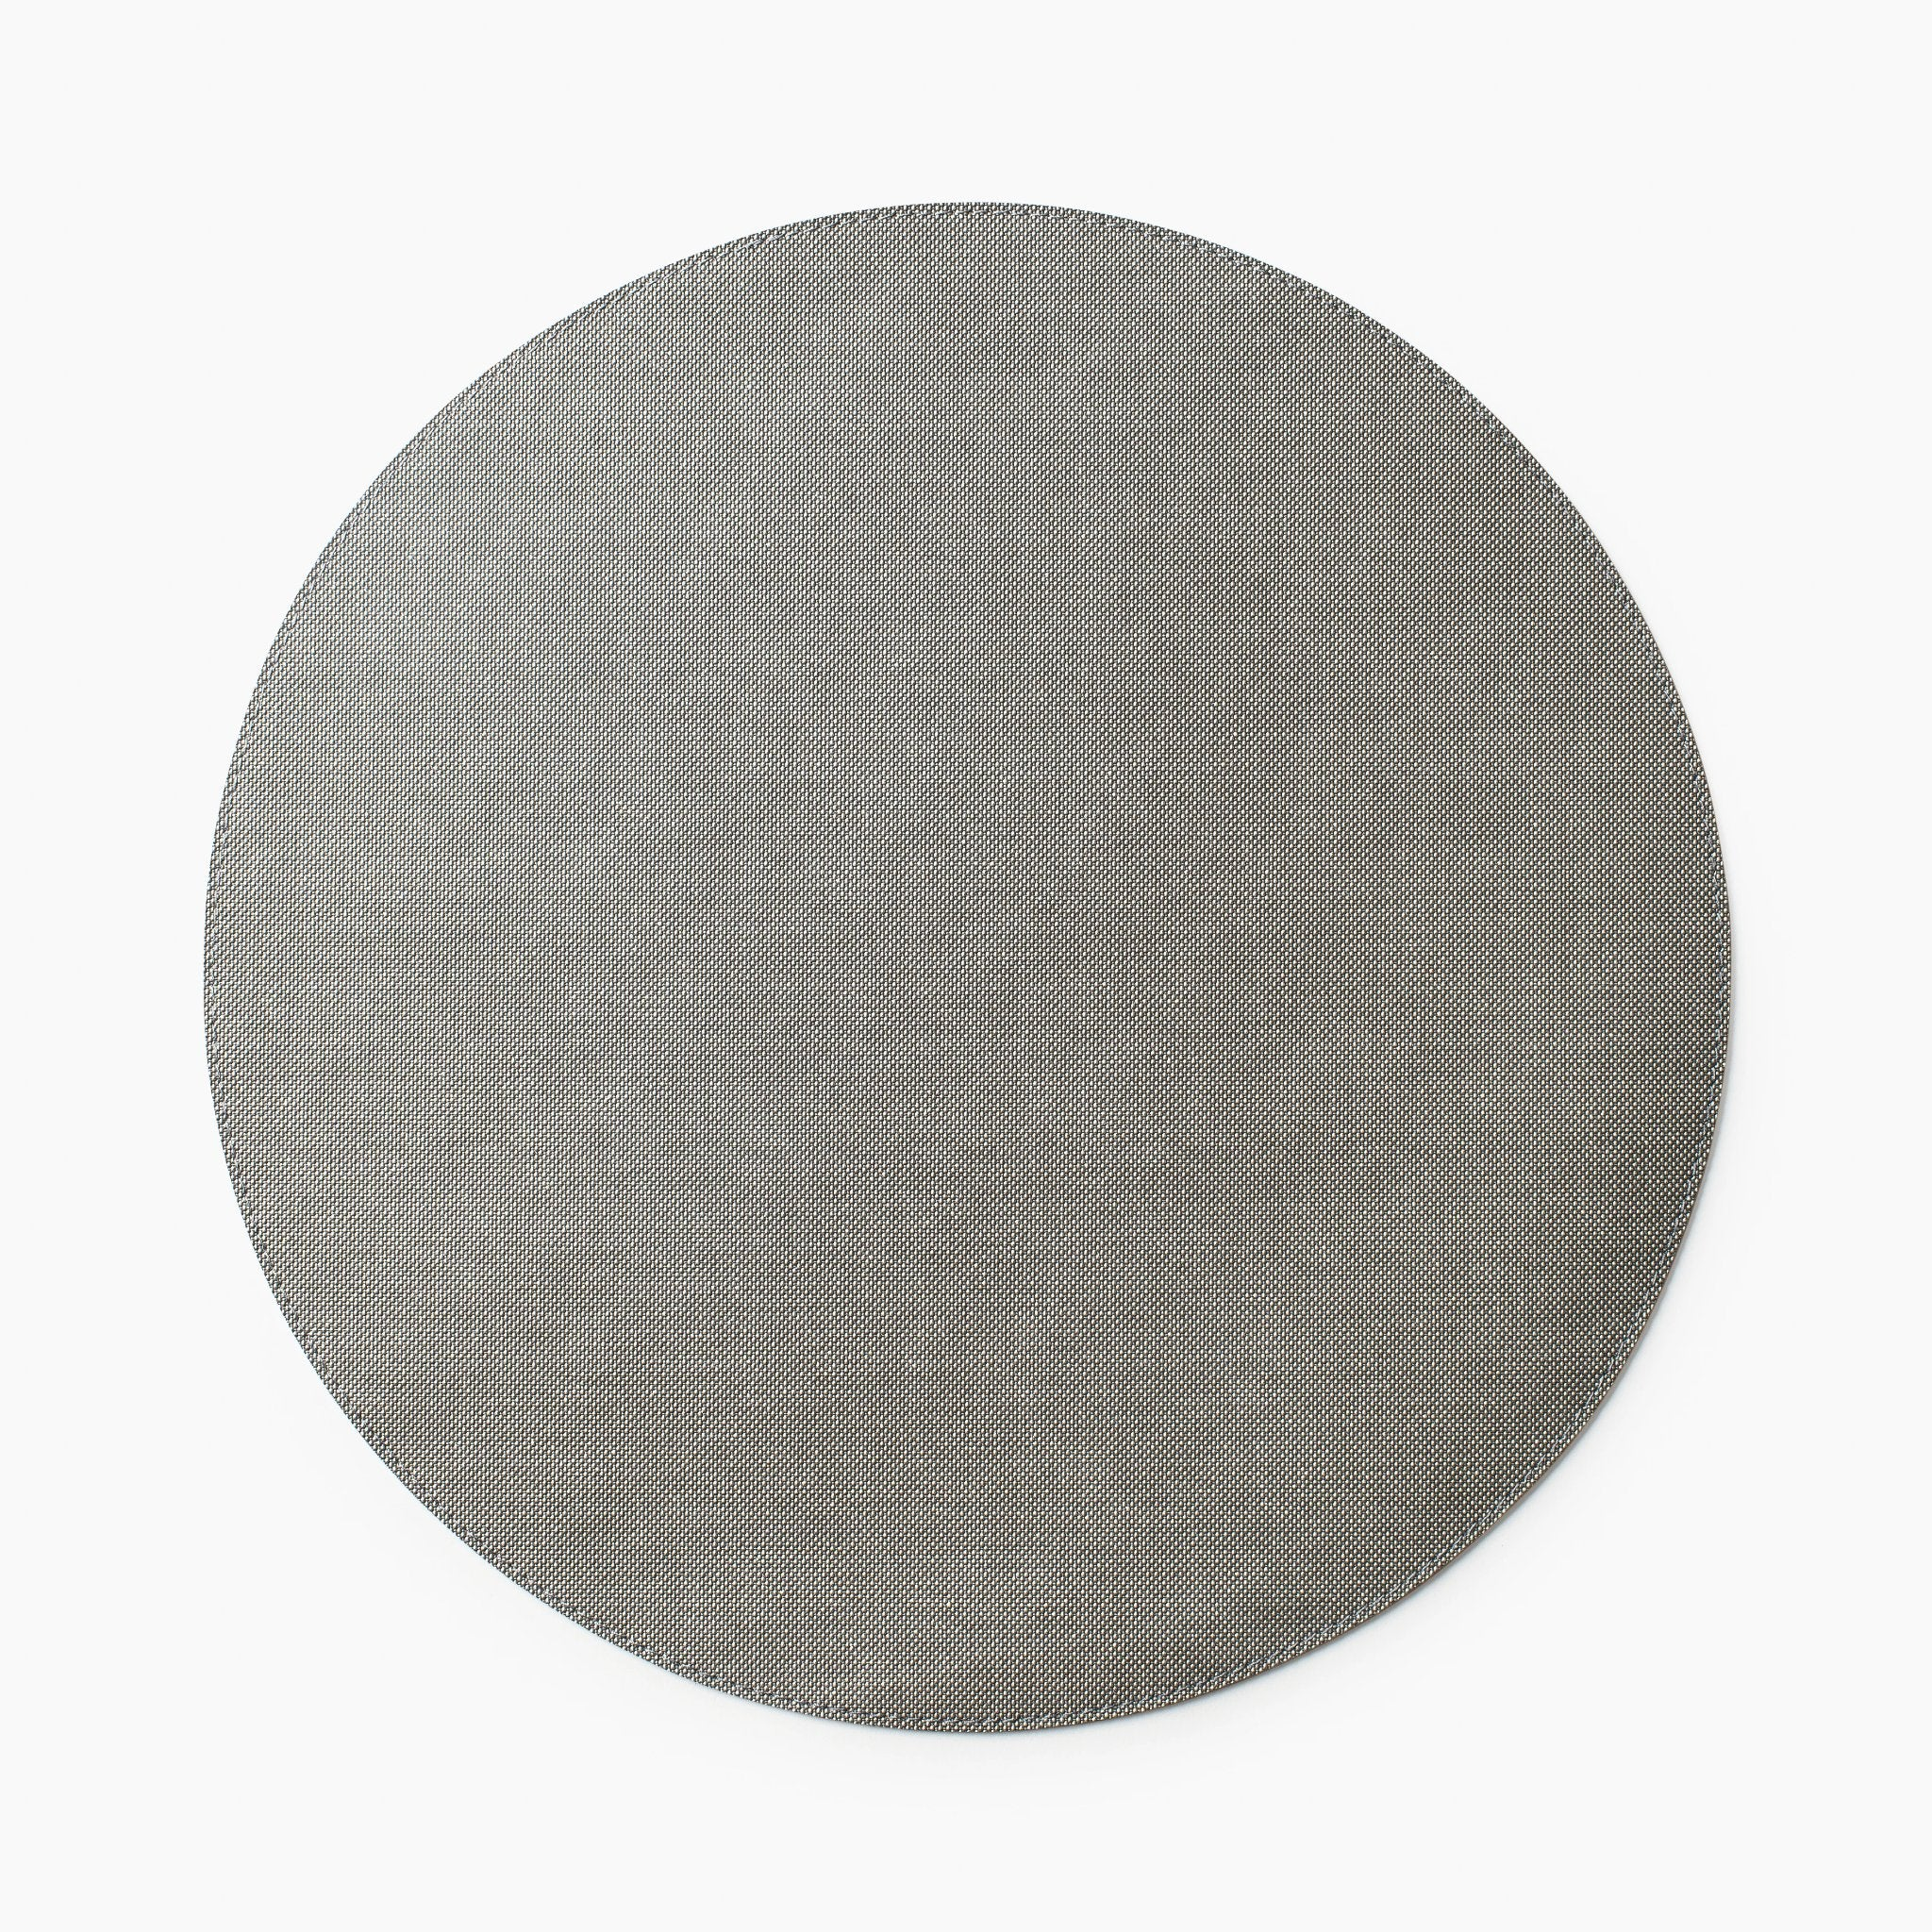 Gem Silver Round Placemat S/6